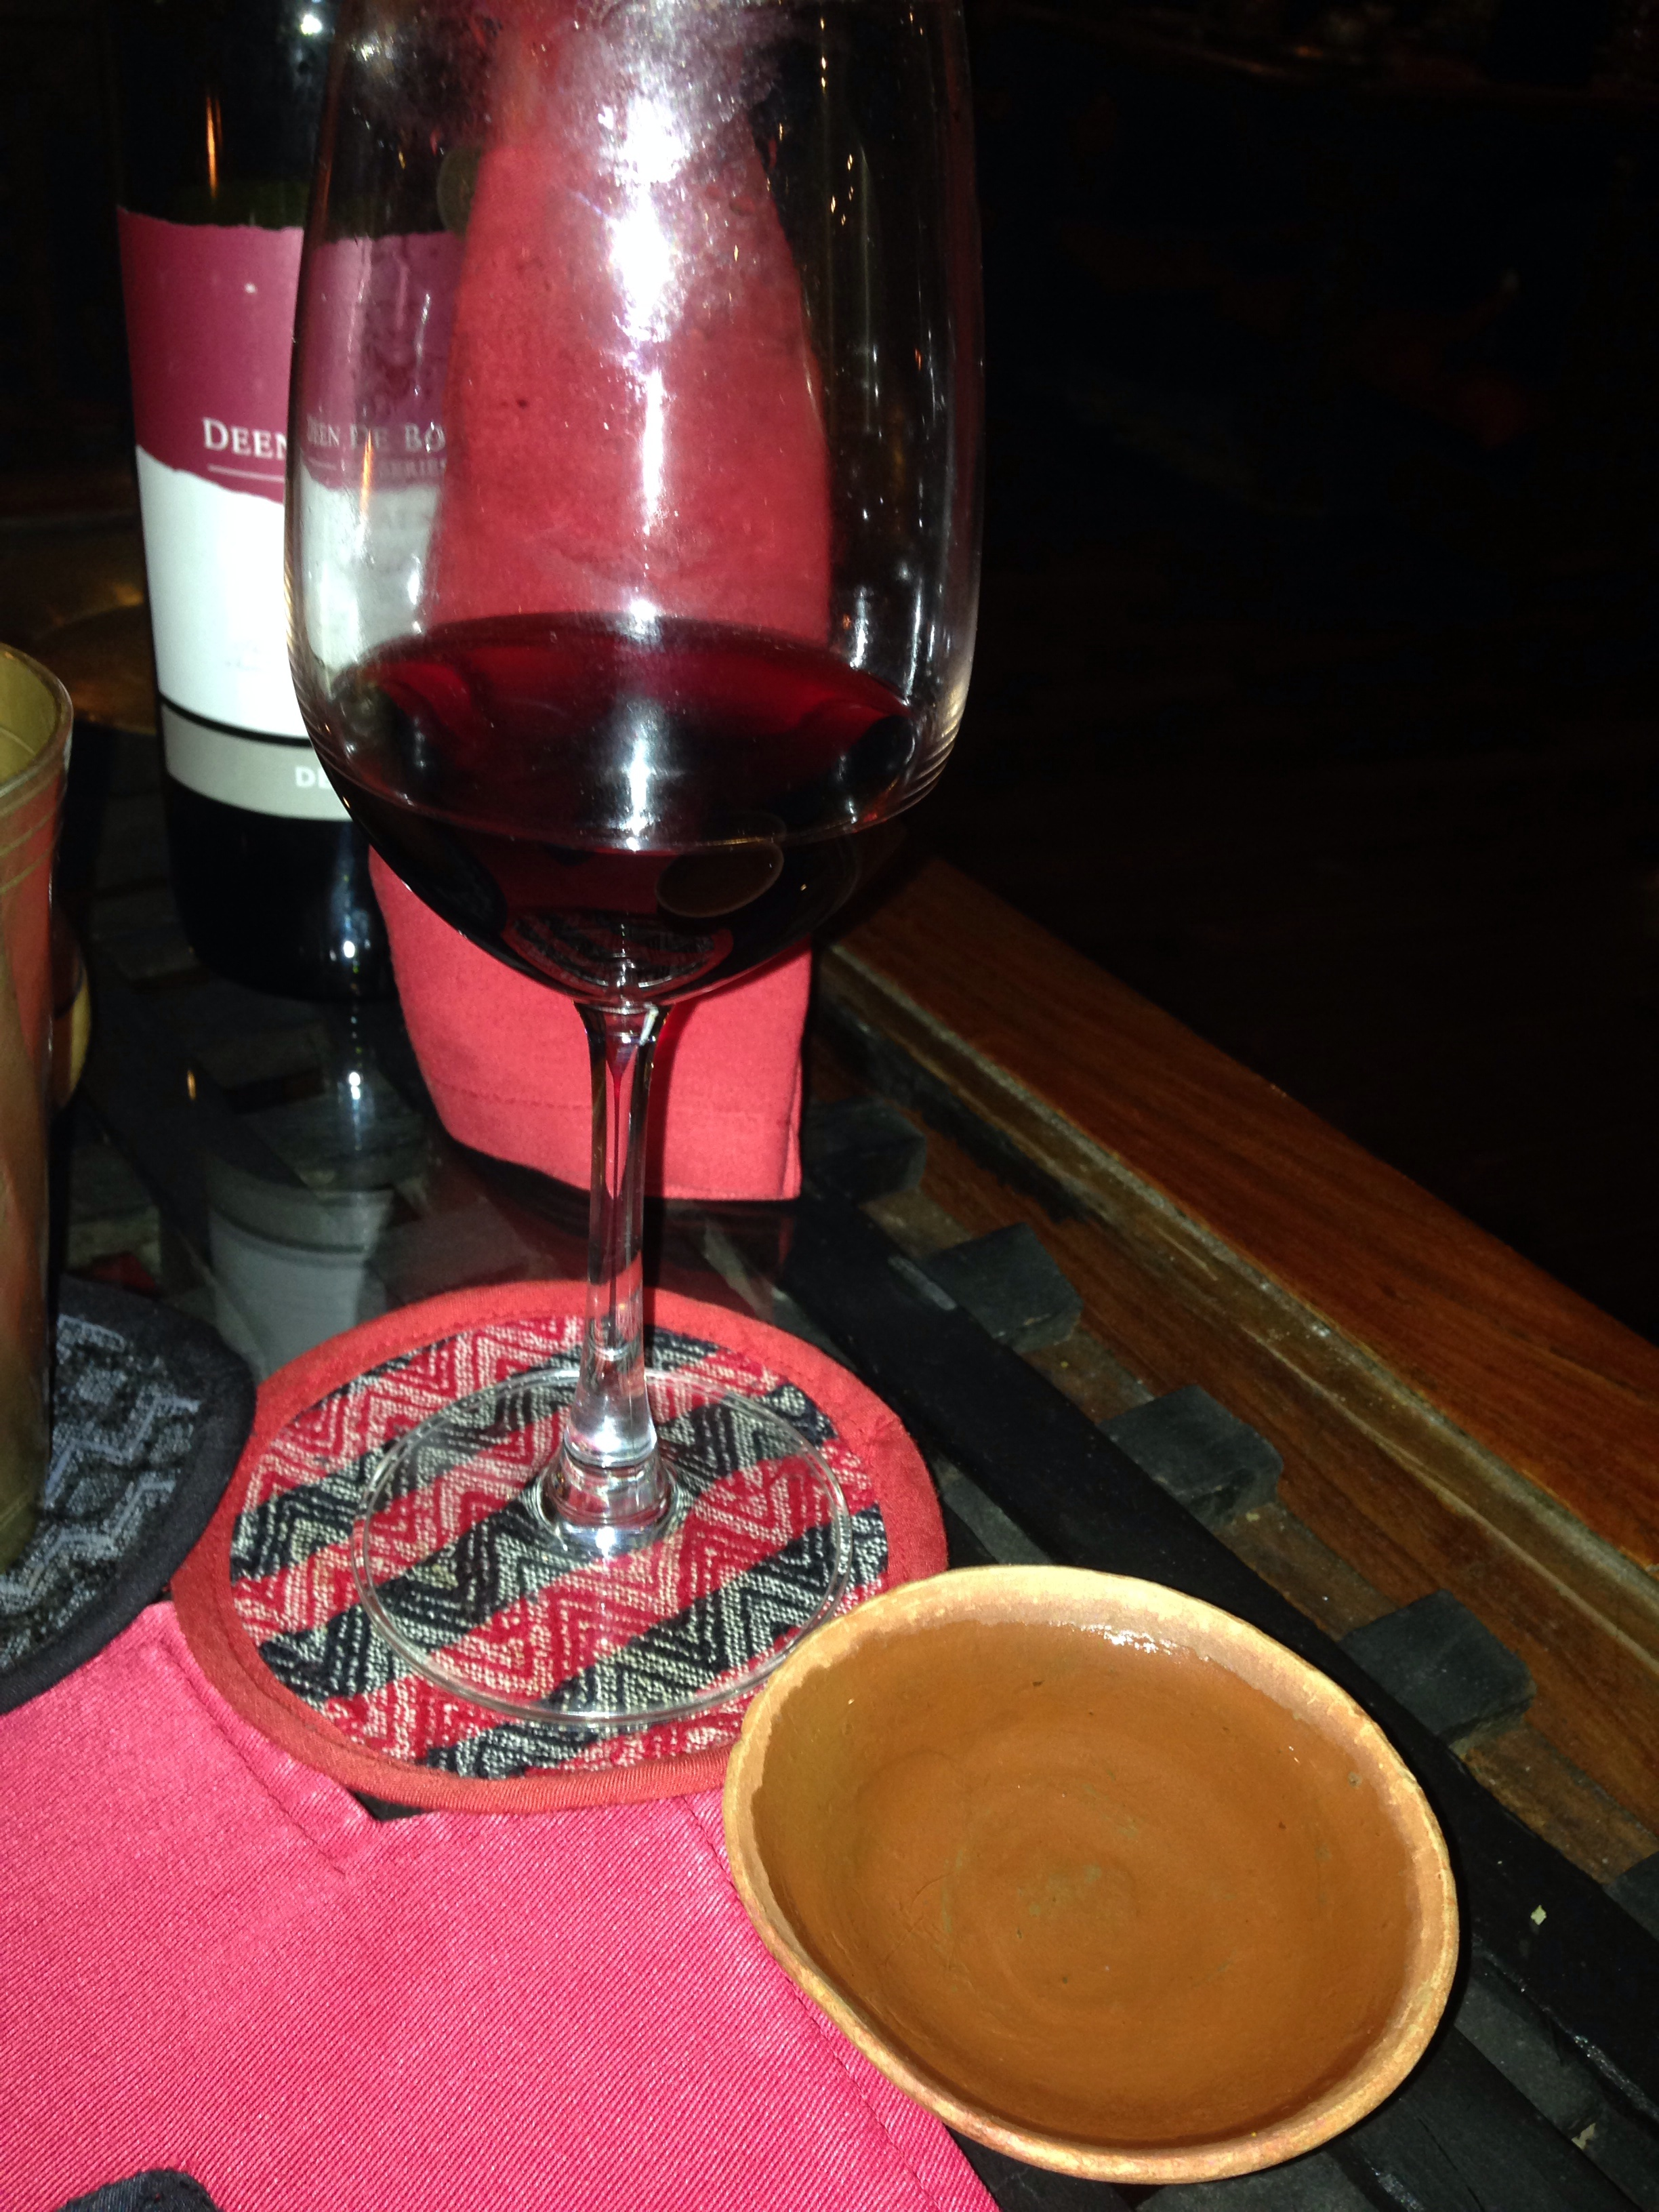 A very fortified Rice Wine is a traditional offering with a Nepalese dinner, and we ordered a spicy Shiraz as well